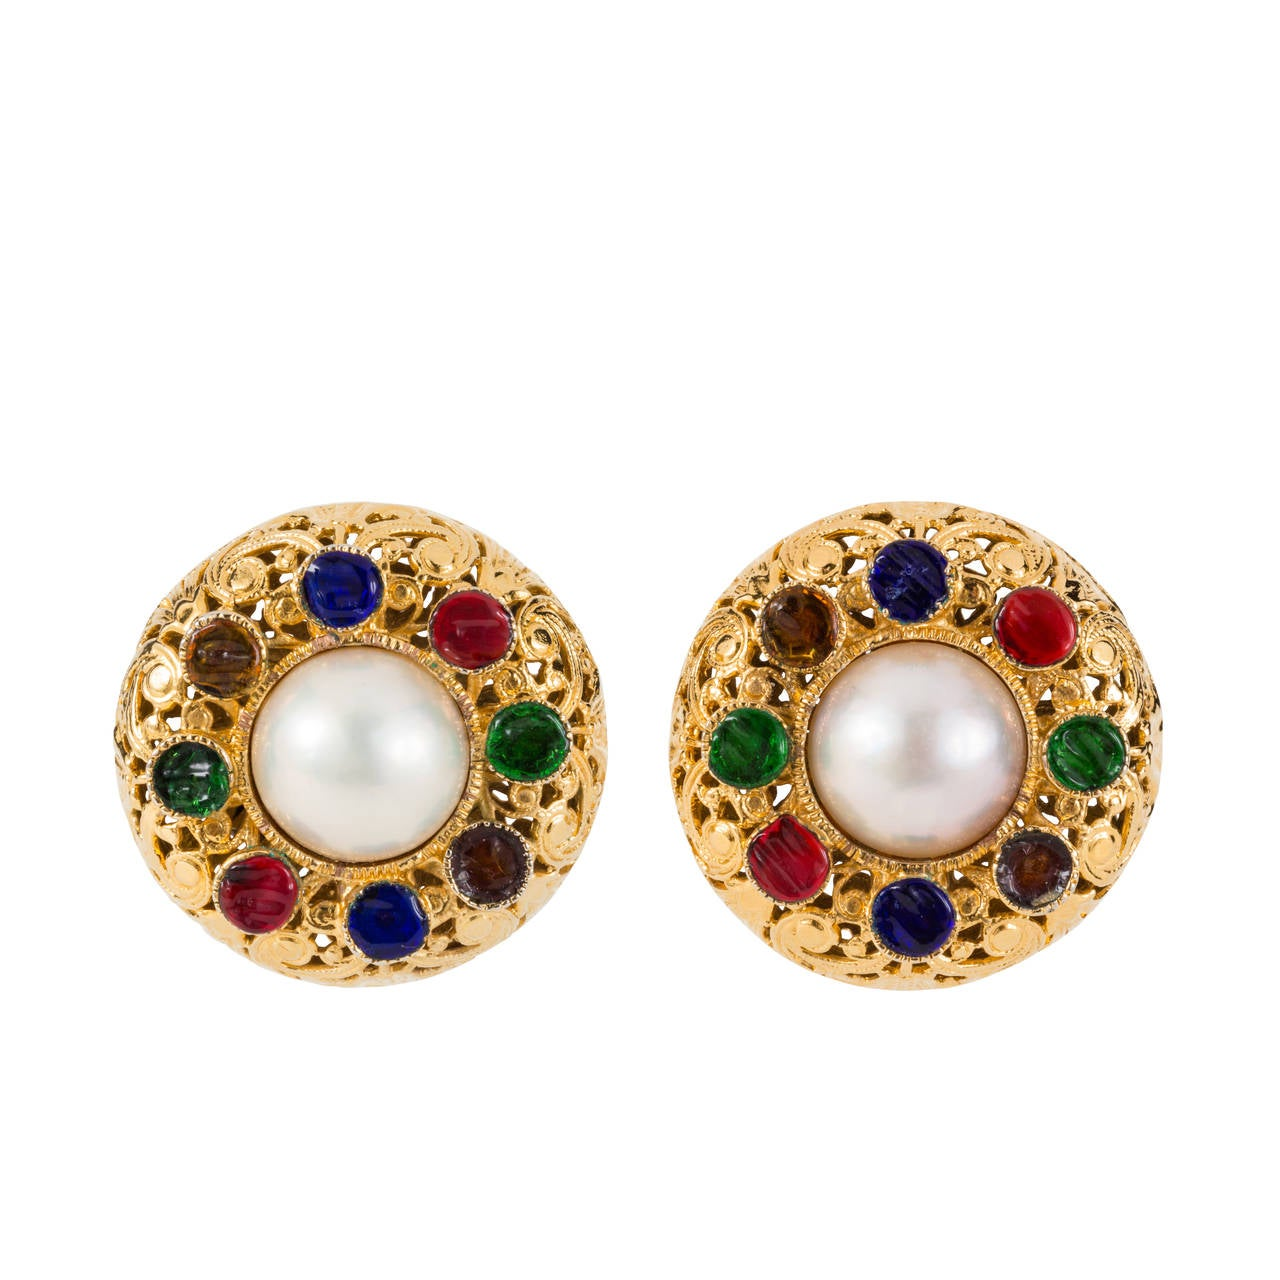 Chanel Gripoix Filagree Clip Earrings 1